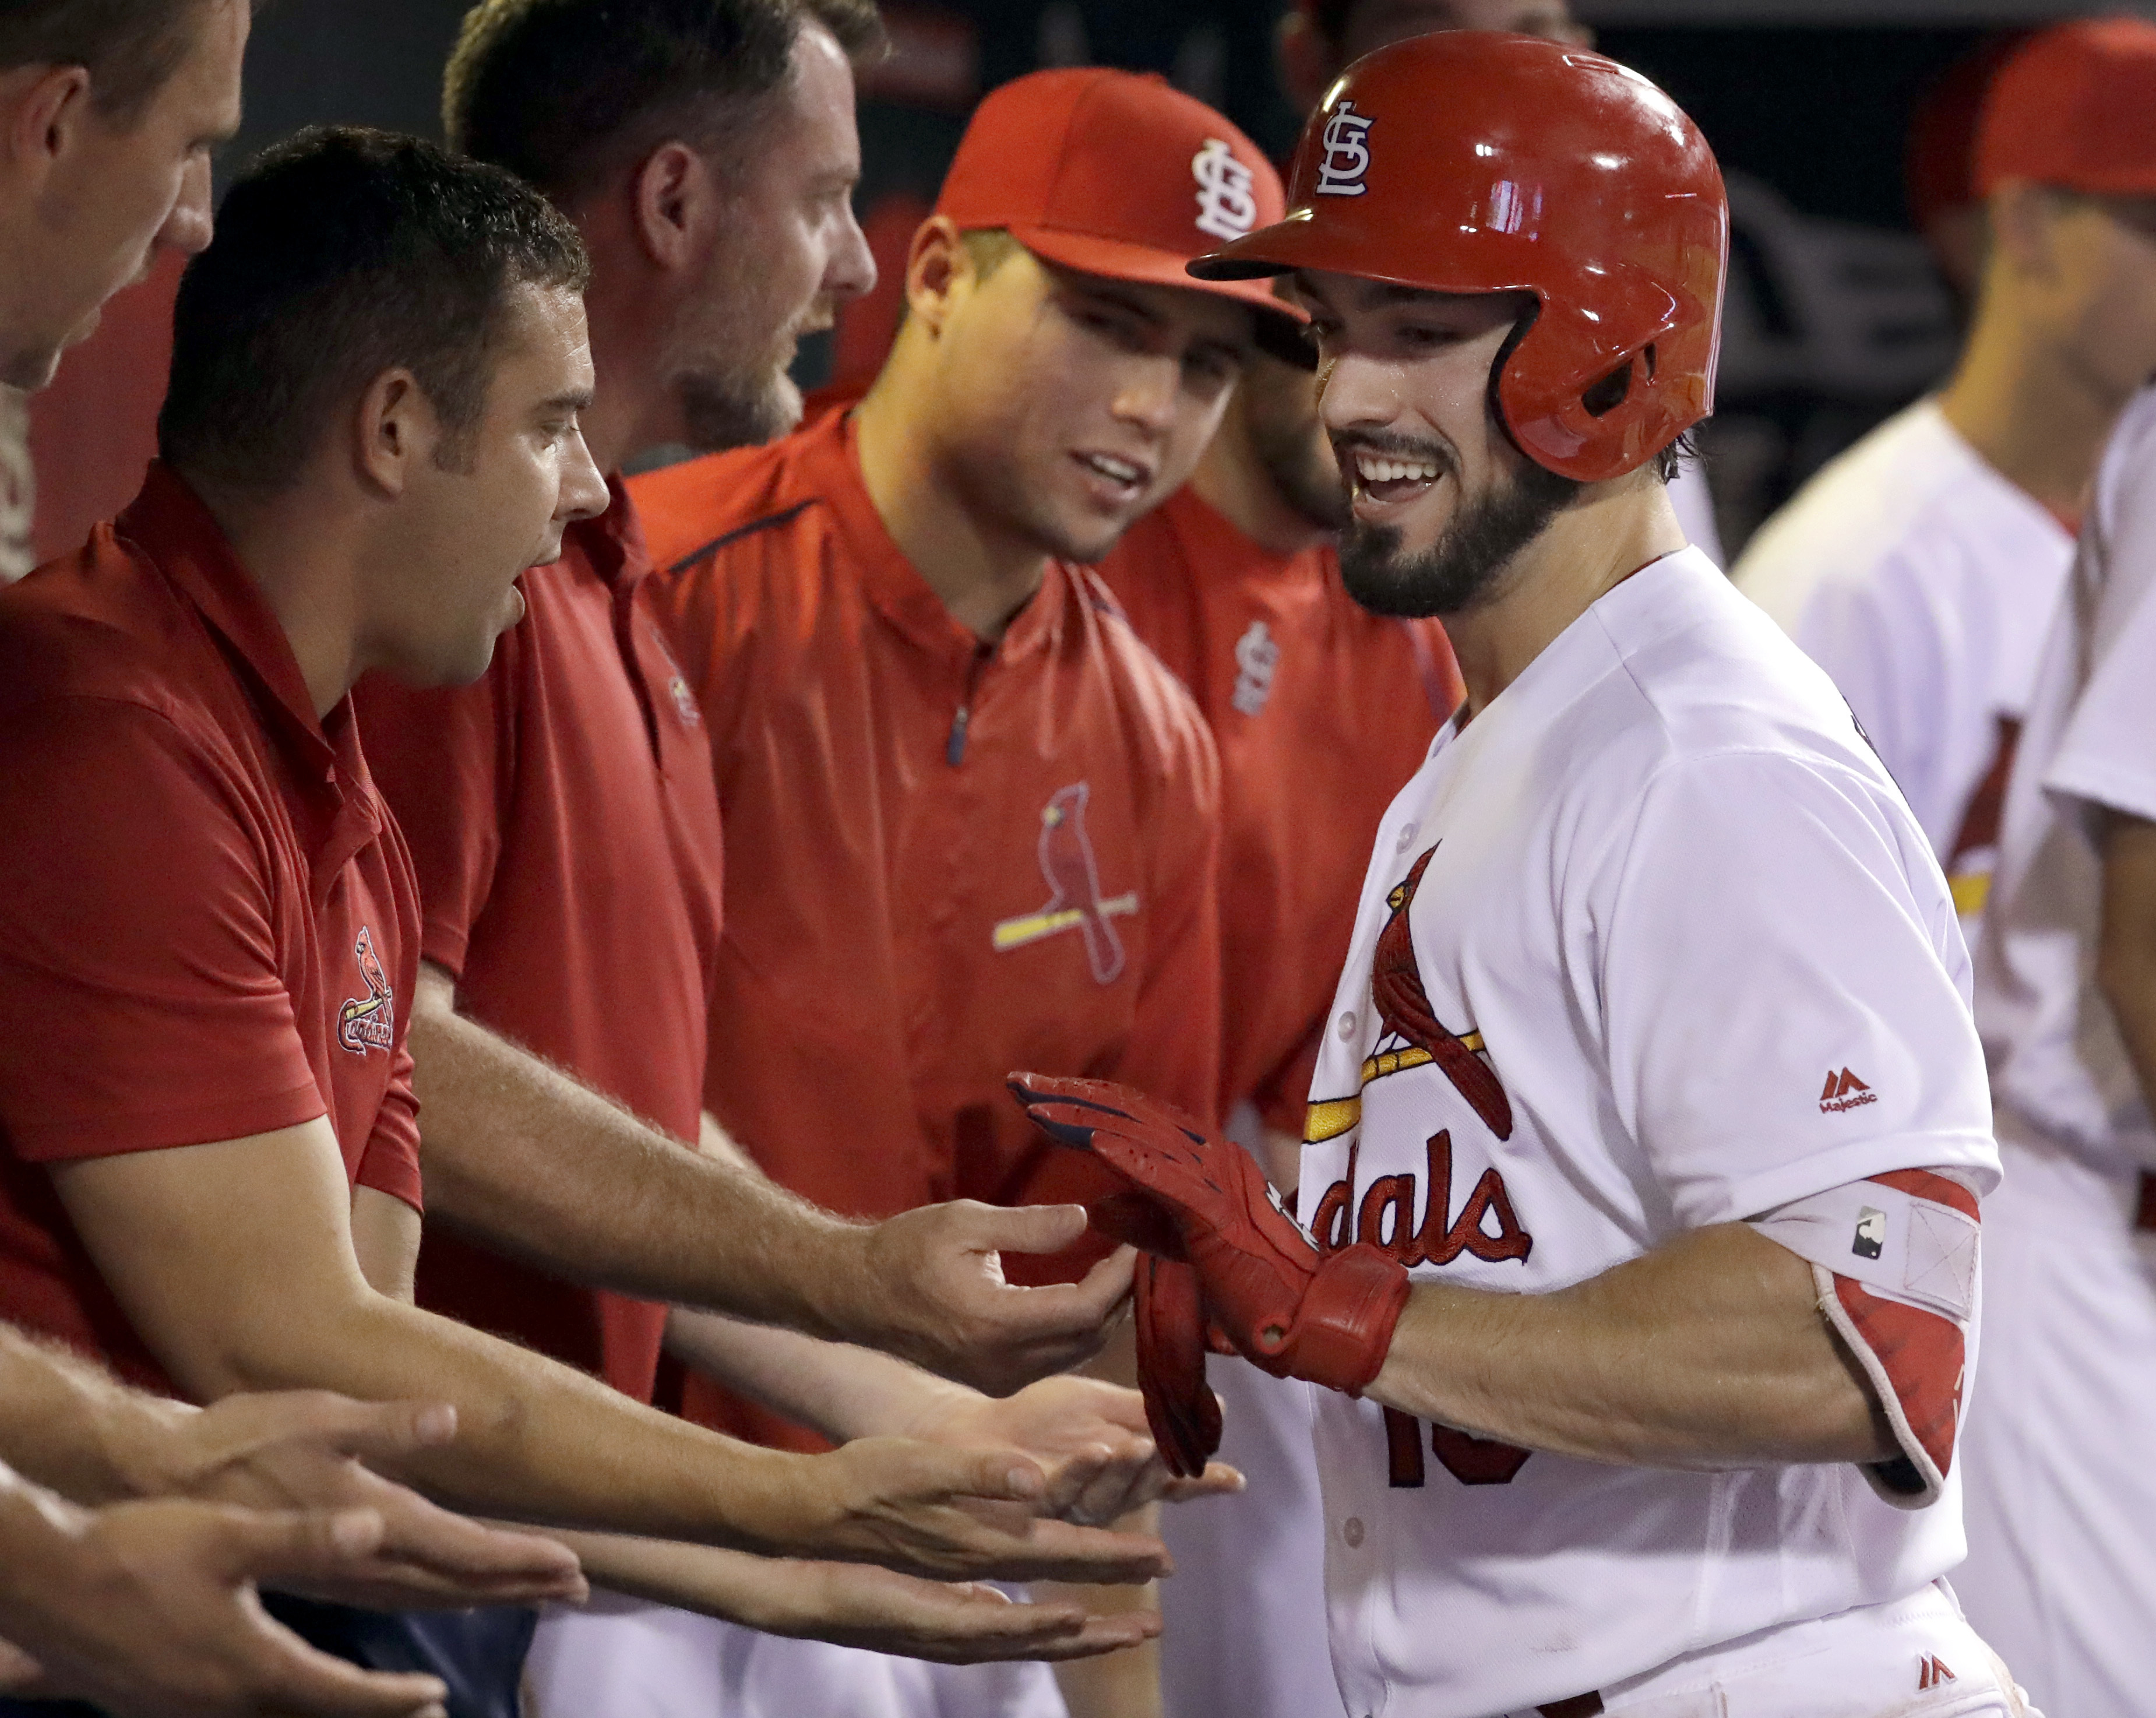 St. Louis Cardinals' Randal Grichuk is congratulated by teammates after hitting a solo home run during the fourth inning of a baseball game against the New York Mets on Wednesday, Aug. 24, 2016, in St. Louis. (AP Photo/Jeff Roberson)